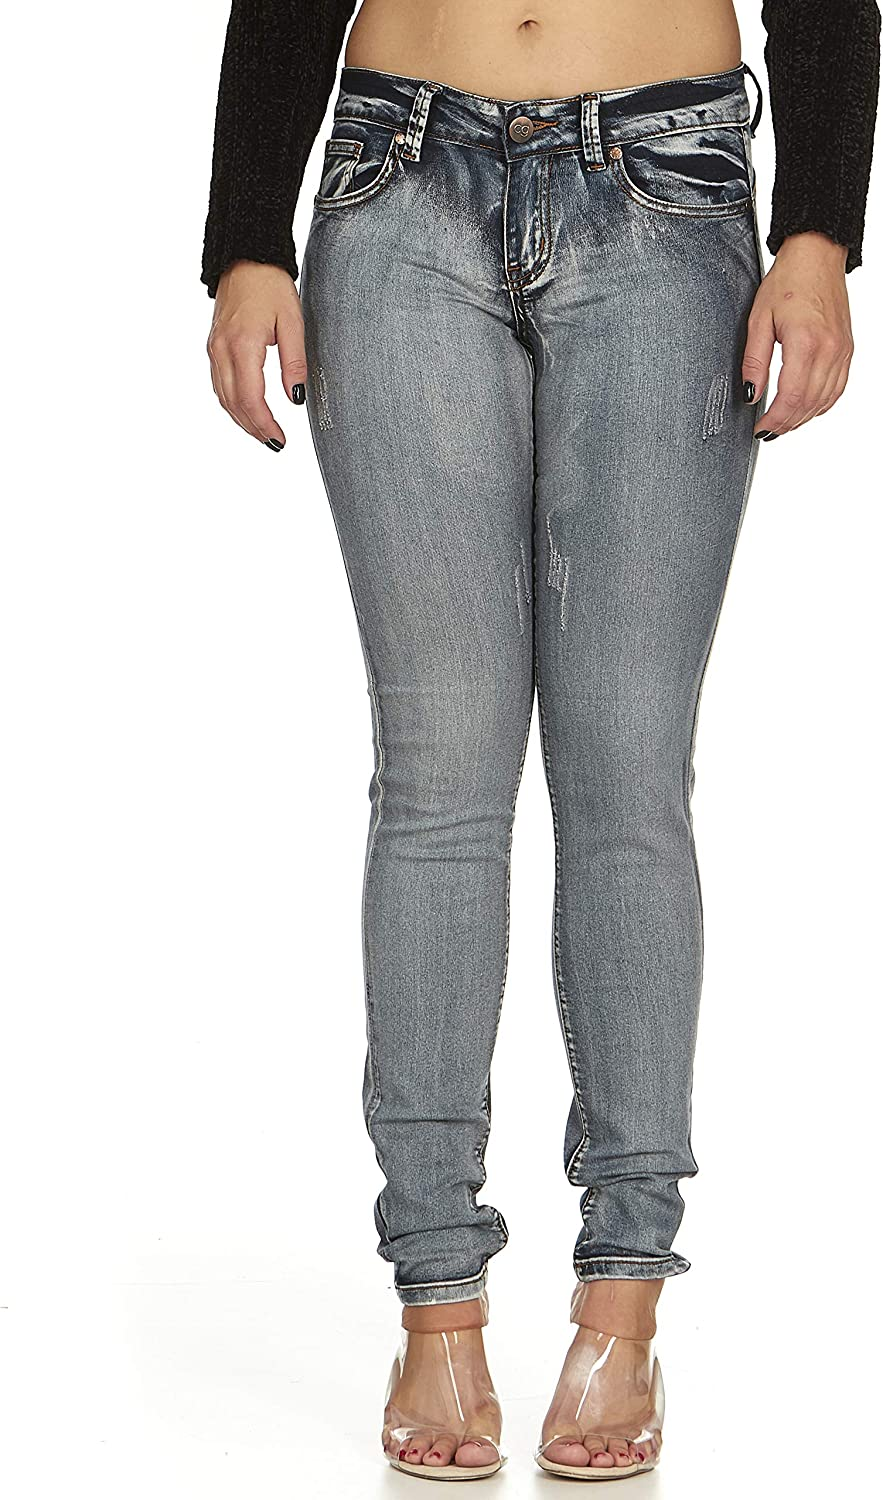 COVER GIRL Women's Five Pocket Classic Blue Wash Slim Fit Skinny